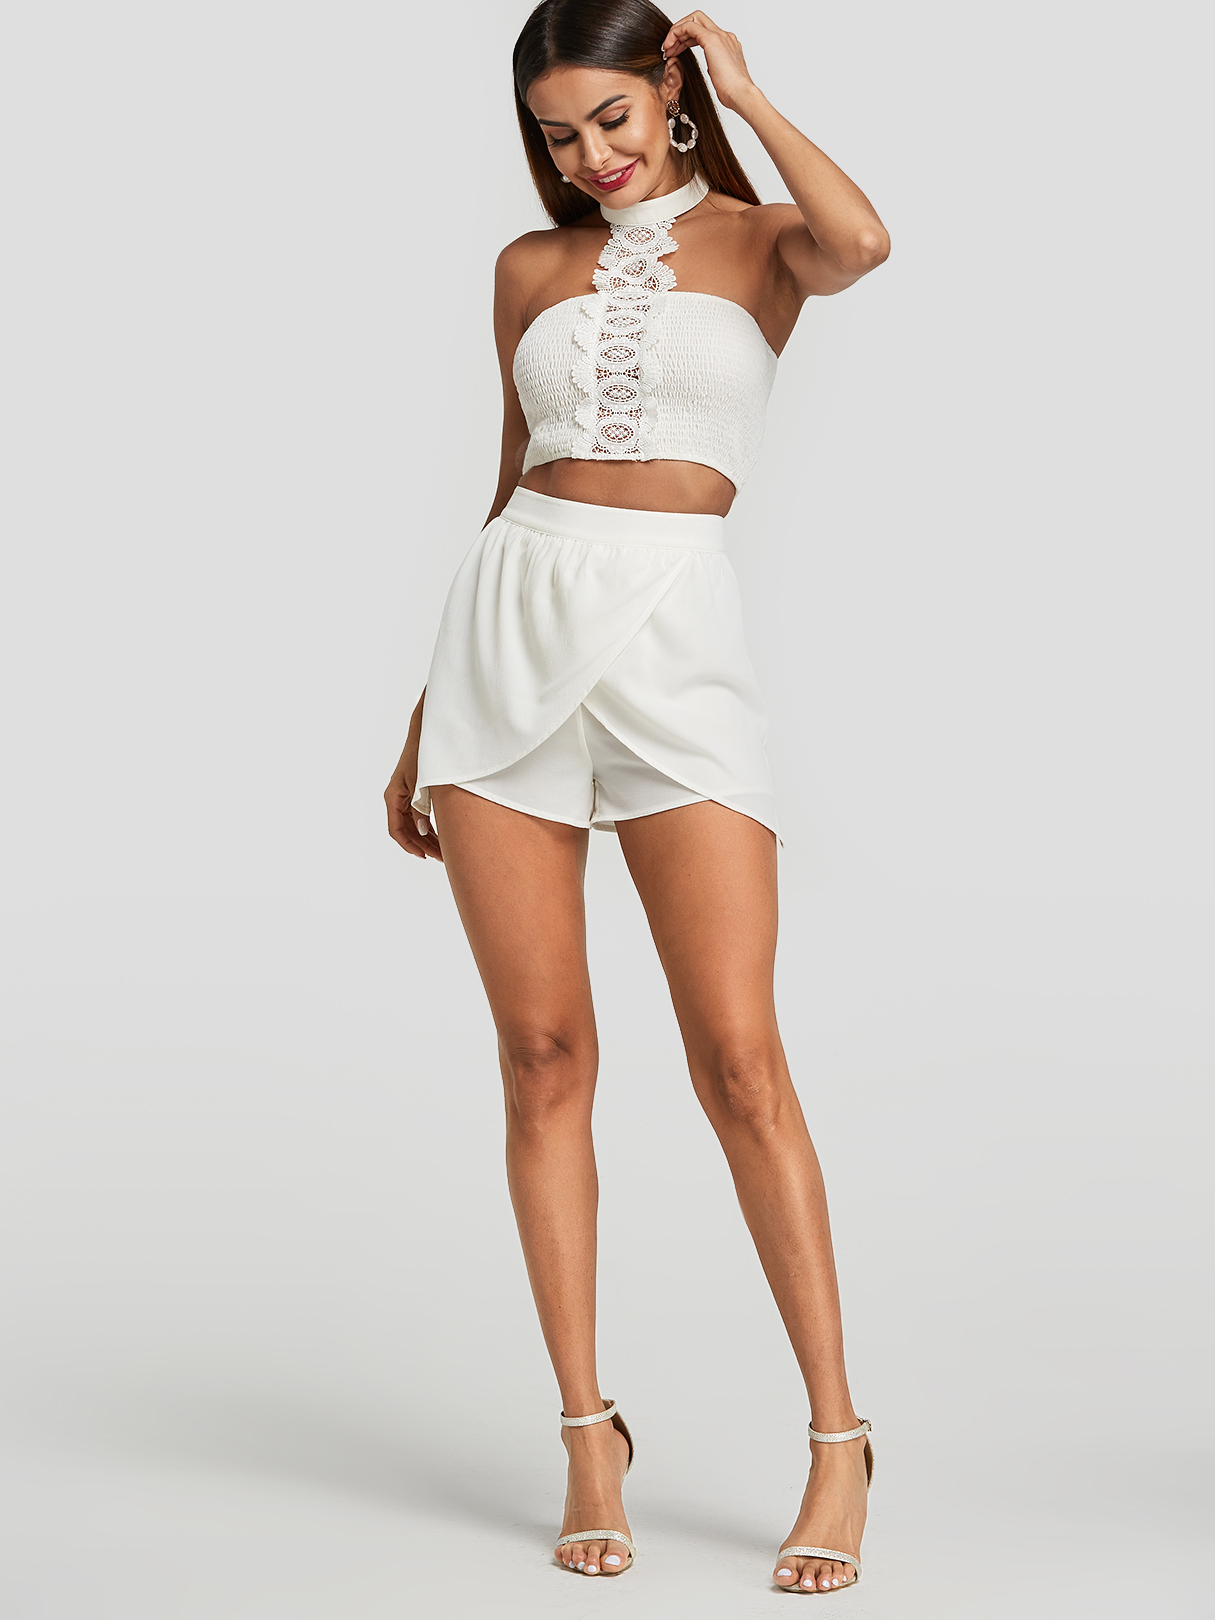 White Lace Halter Neck Tiered design Two Piece Outfits